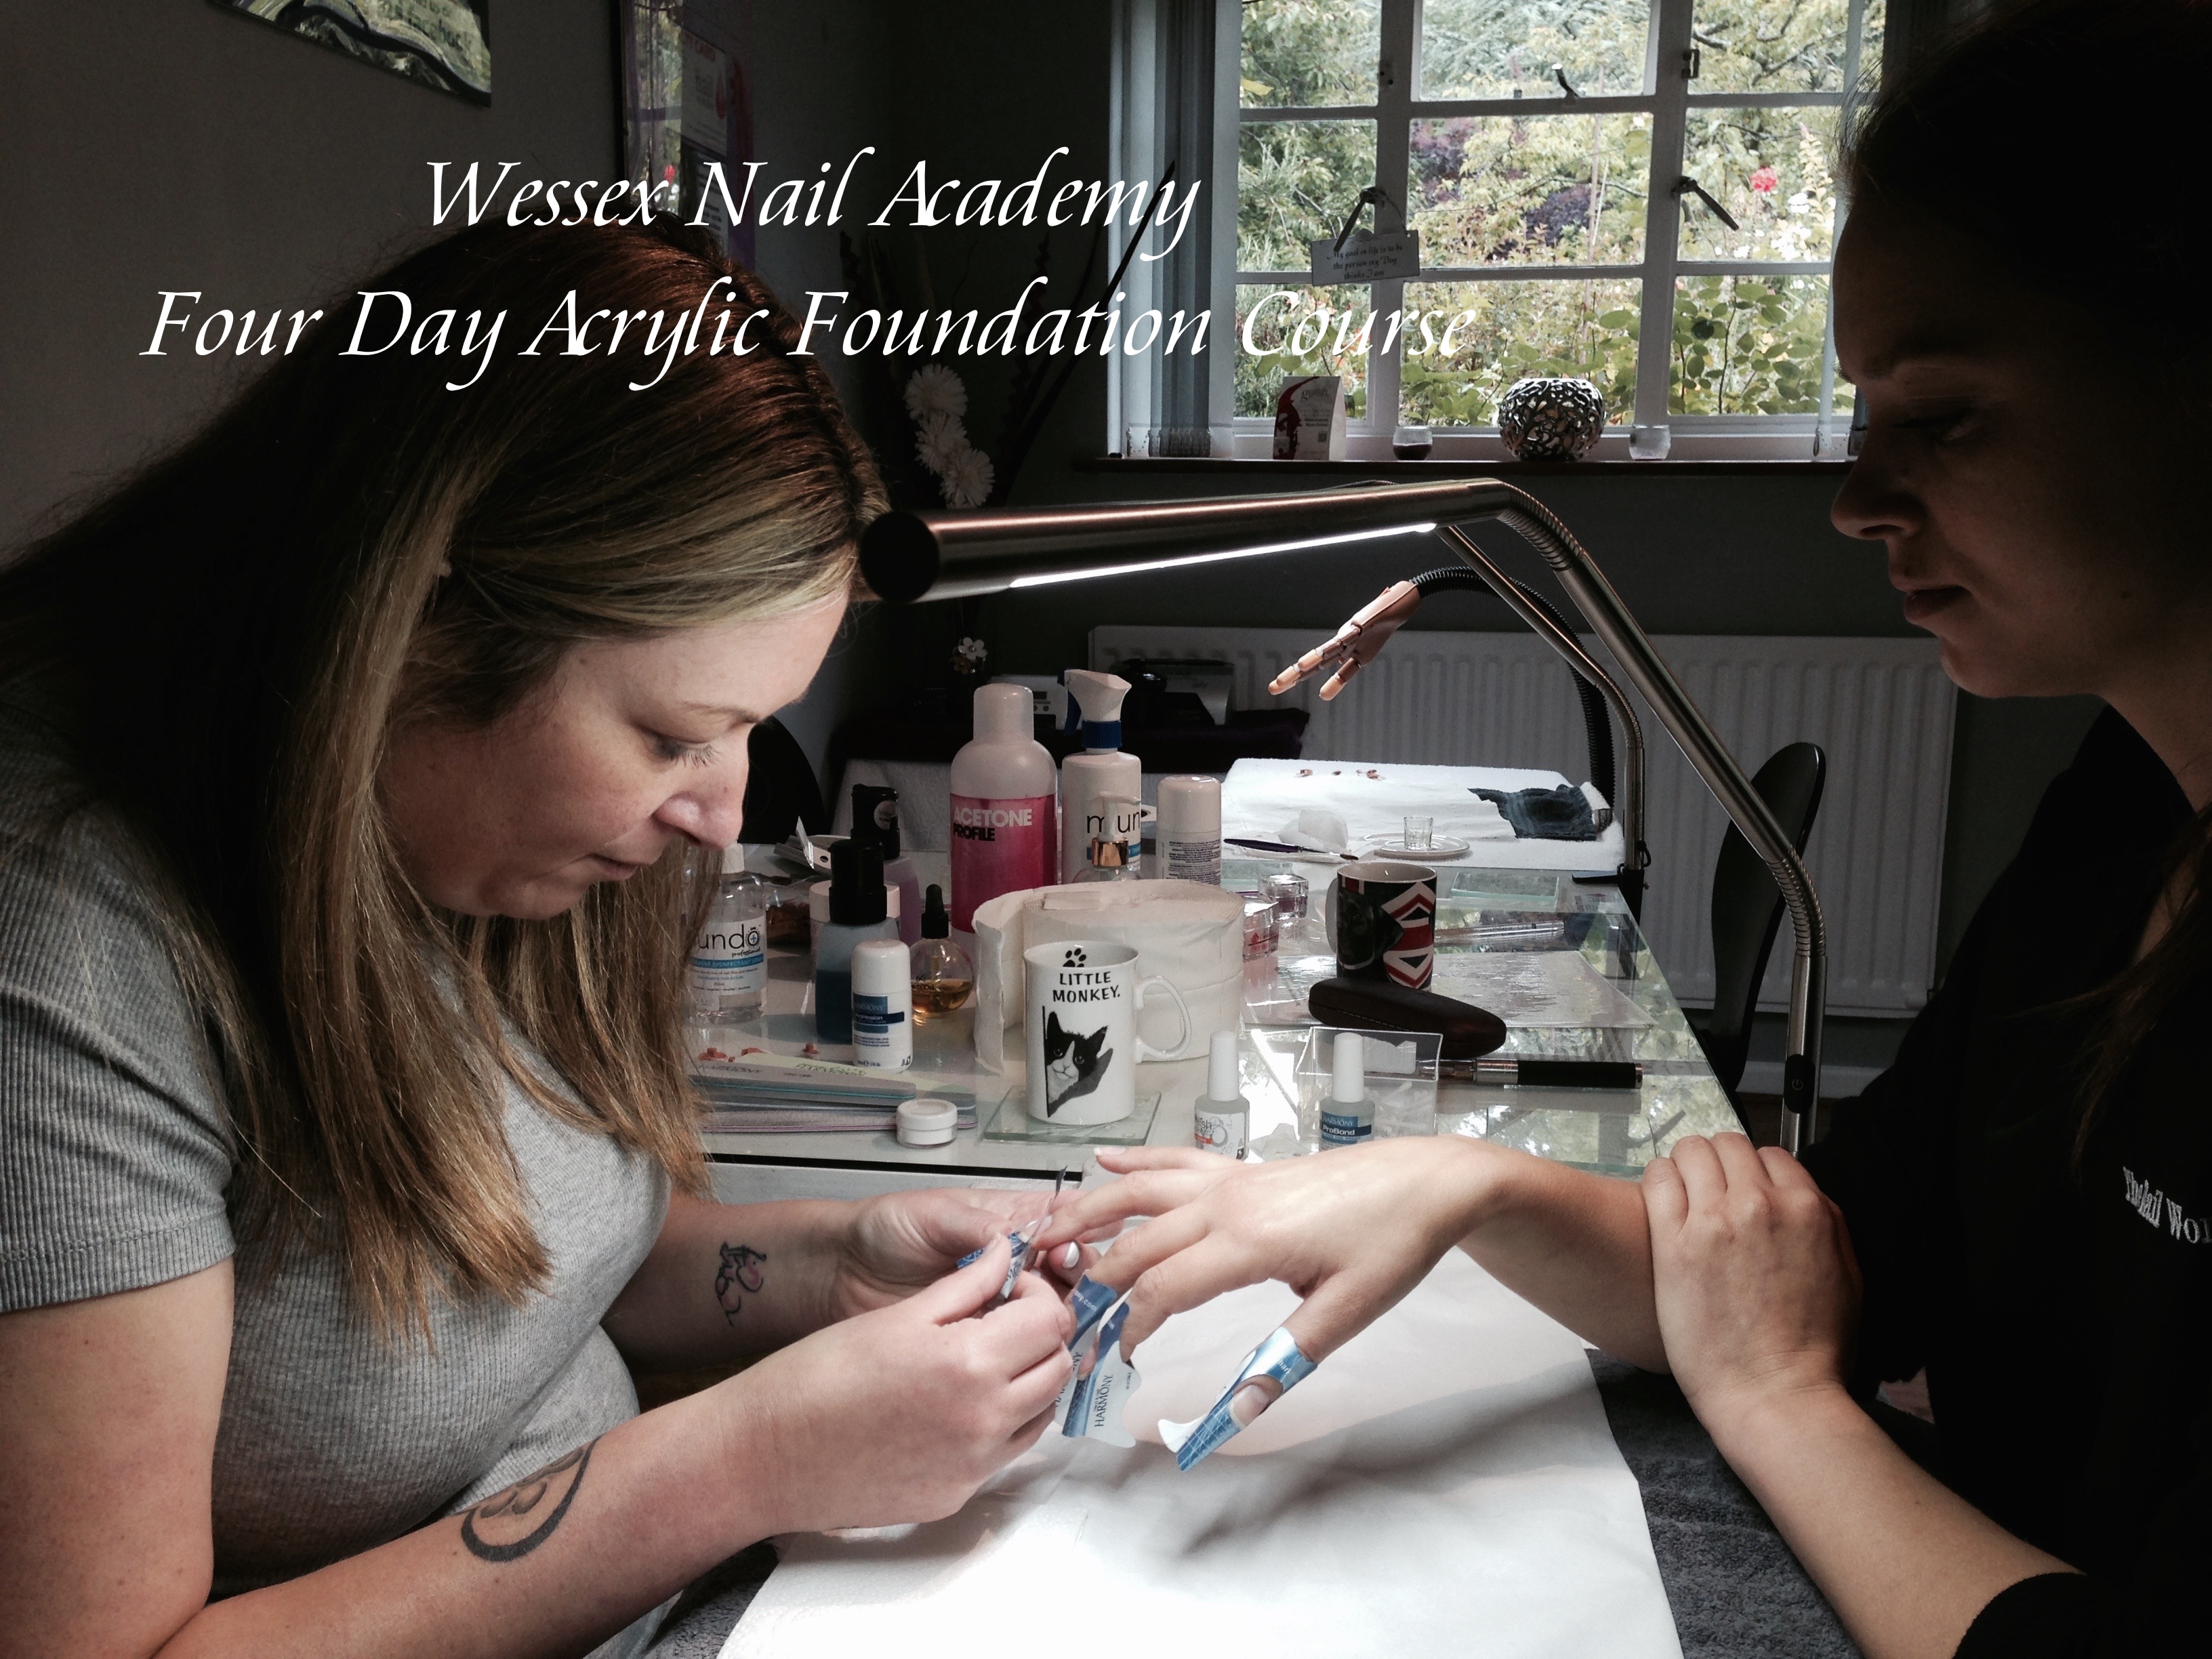 Acrylic Nail Training courses, Nail extension training , nail training course, Wessex Nail Academy Okeford Fitzpaine, Dorset